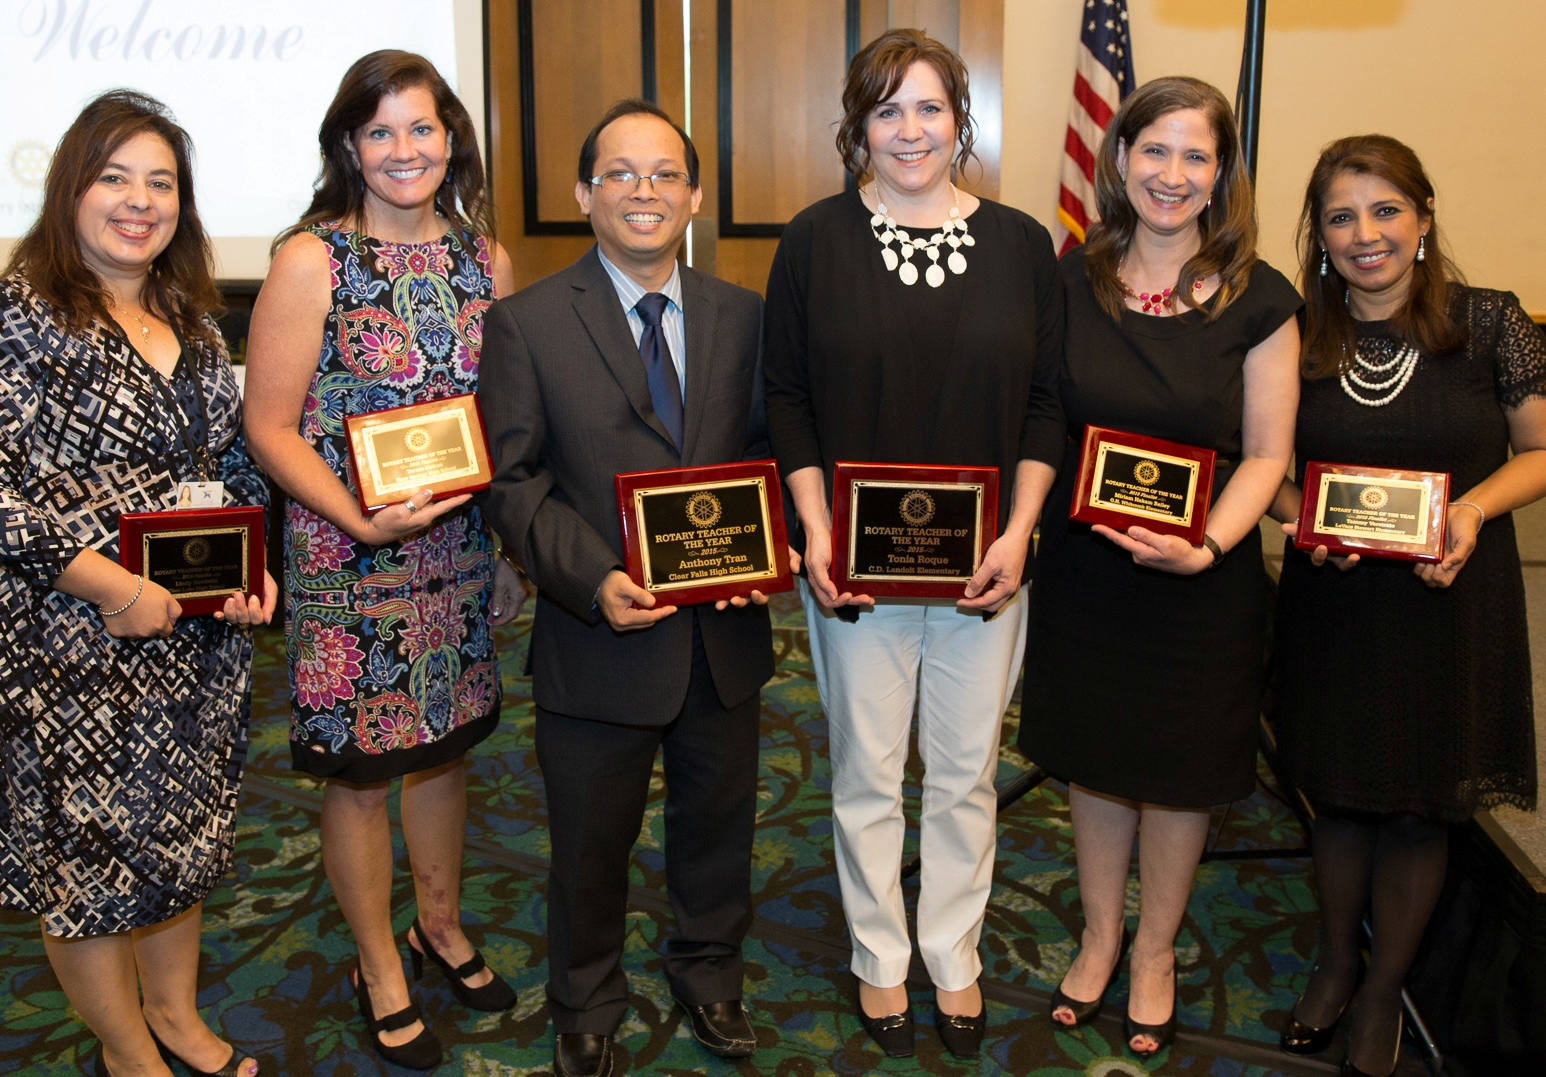 The six finalists for Clear Creek ISD Teacher of the Year get together for a photo as the program comes to an end. They are, from left, Lindy Goodwin, Clear Lake High; Teresa Cotton, Clear Springs High;Anthony Tran, Clear Falls High; Tonia Roque, Landolt Elementary;  Miriam Bailey, Whitcomb Elementary;  and Tammy Verstrate, Stewart Elementary.